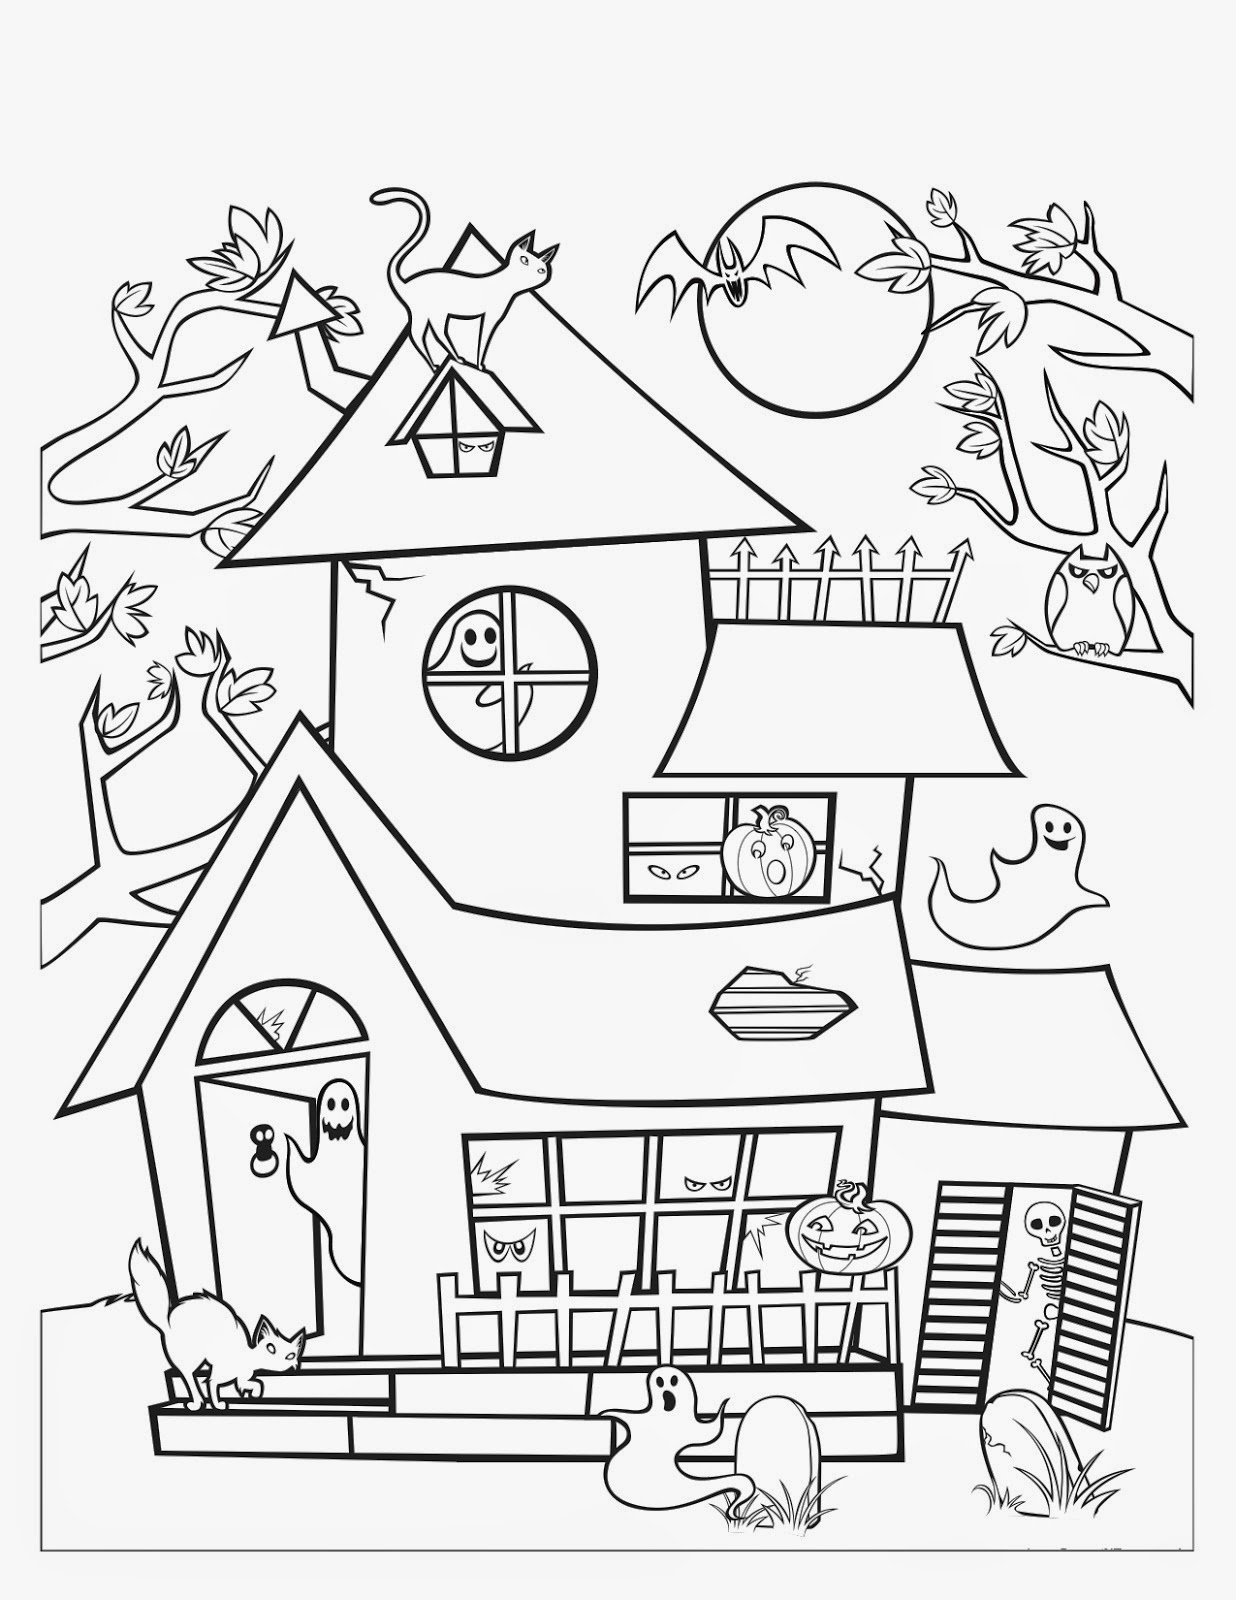 Simple Haunted House Drawing At Getdrawings Com Free For Personal